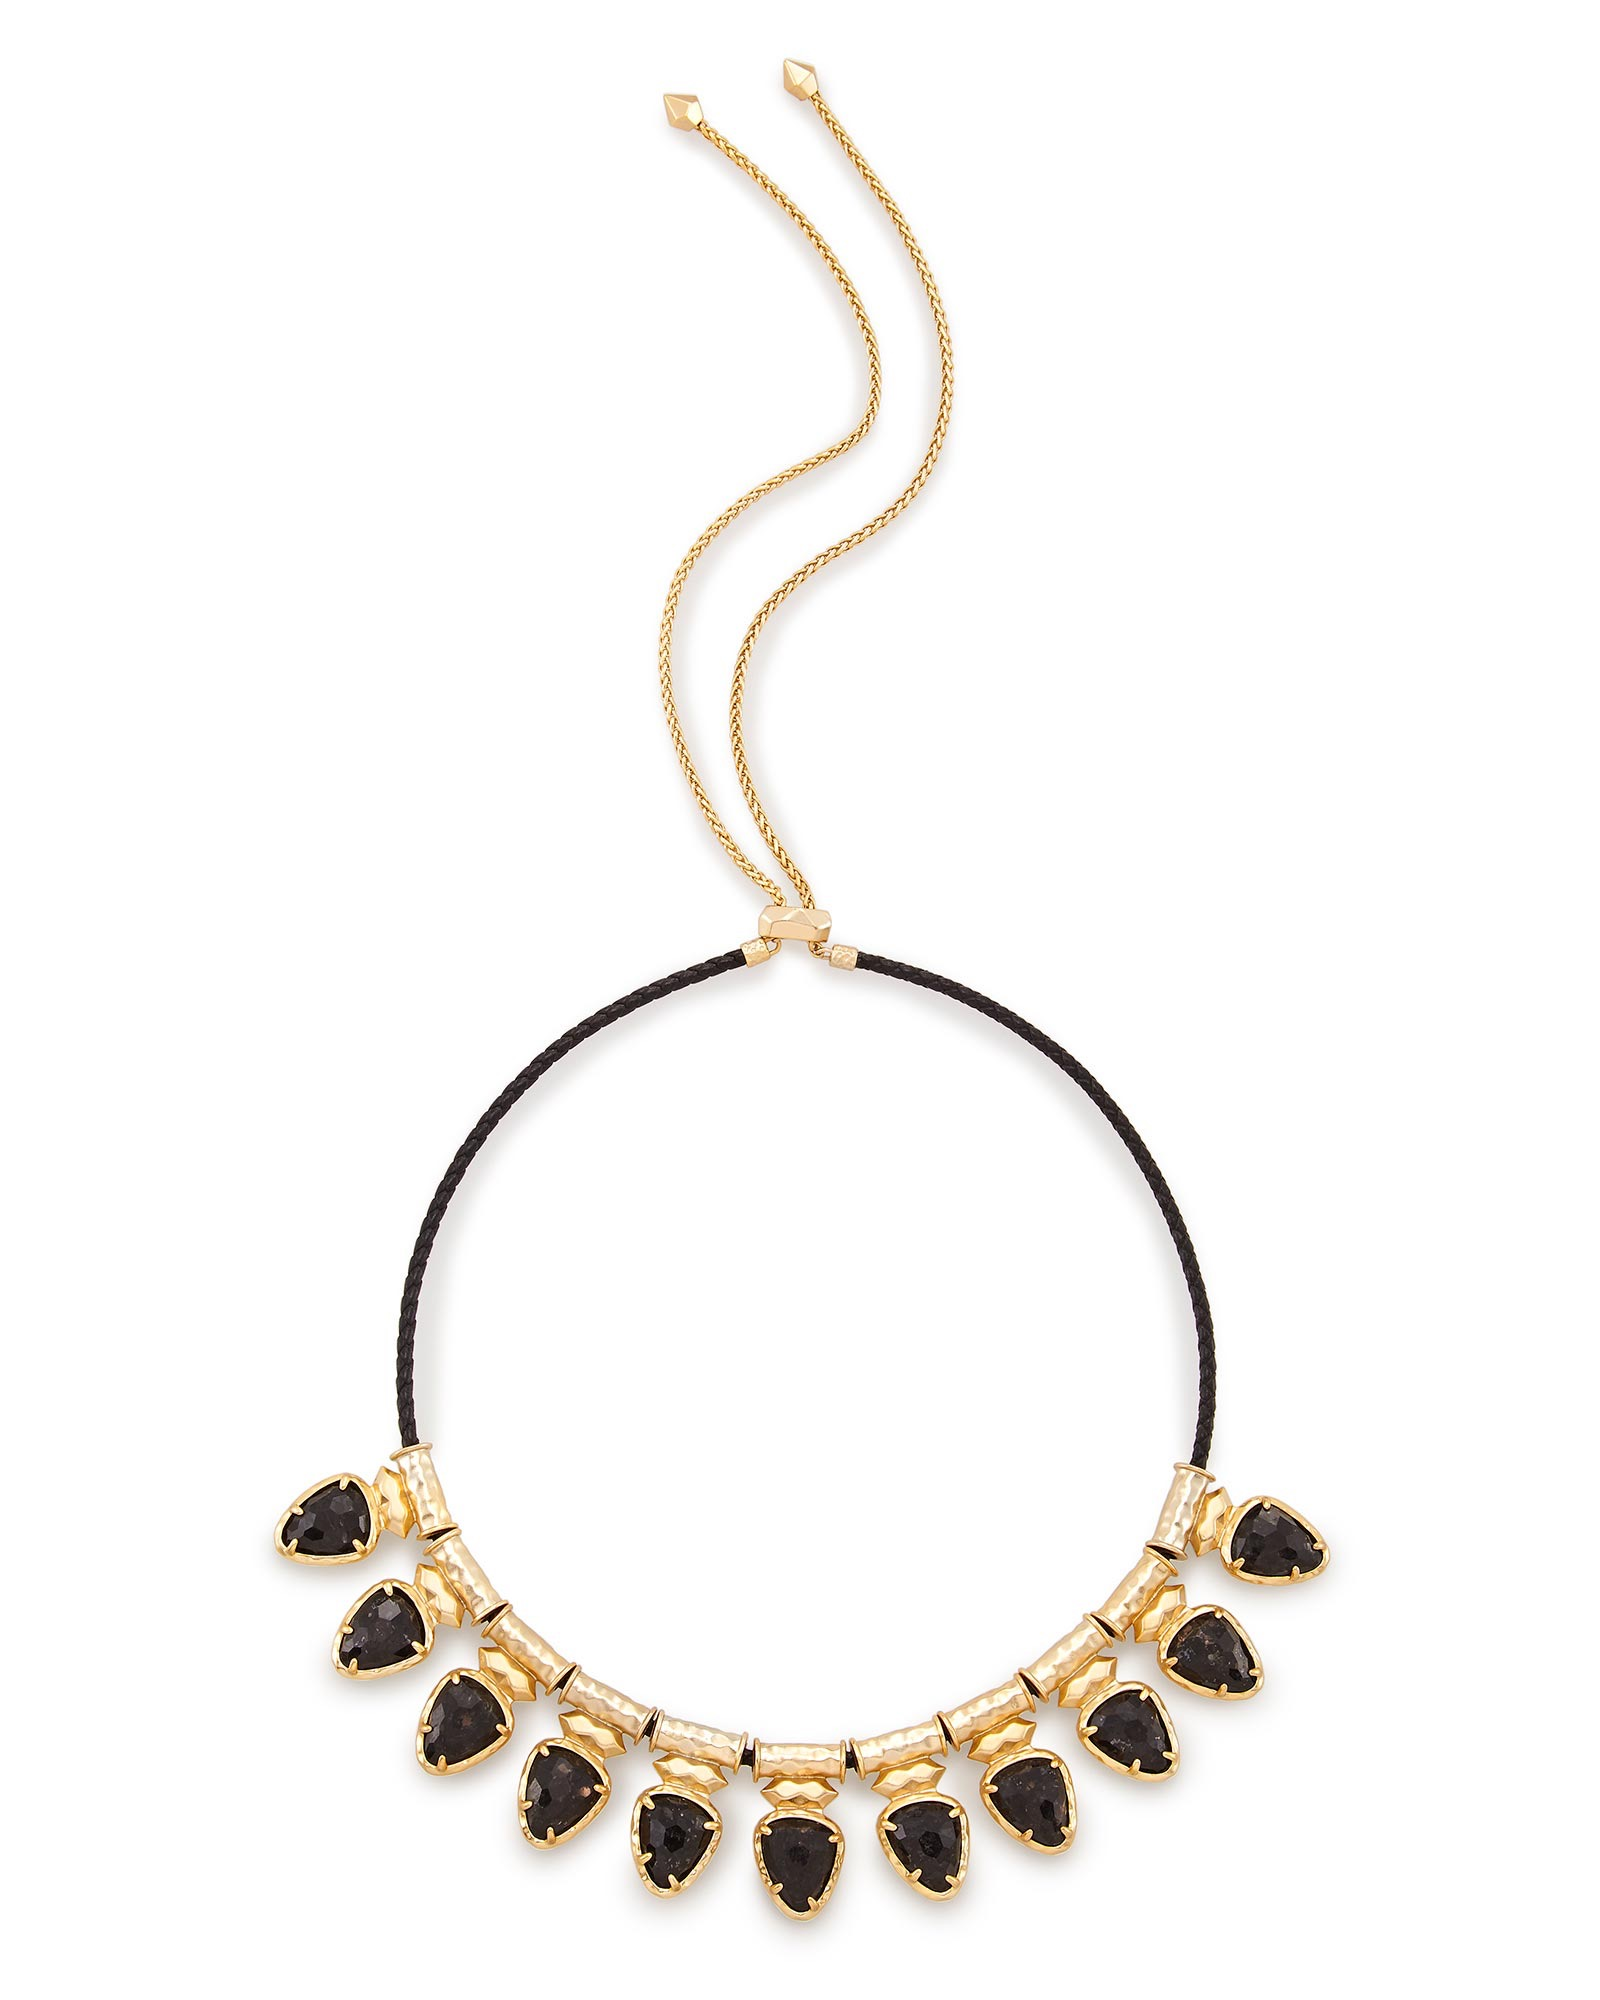 Willow Choker Necklace in Black Granite